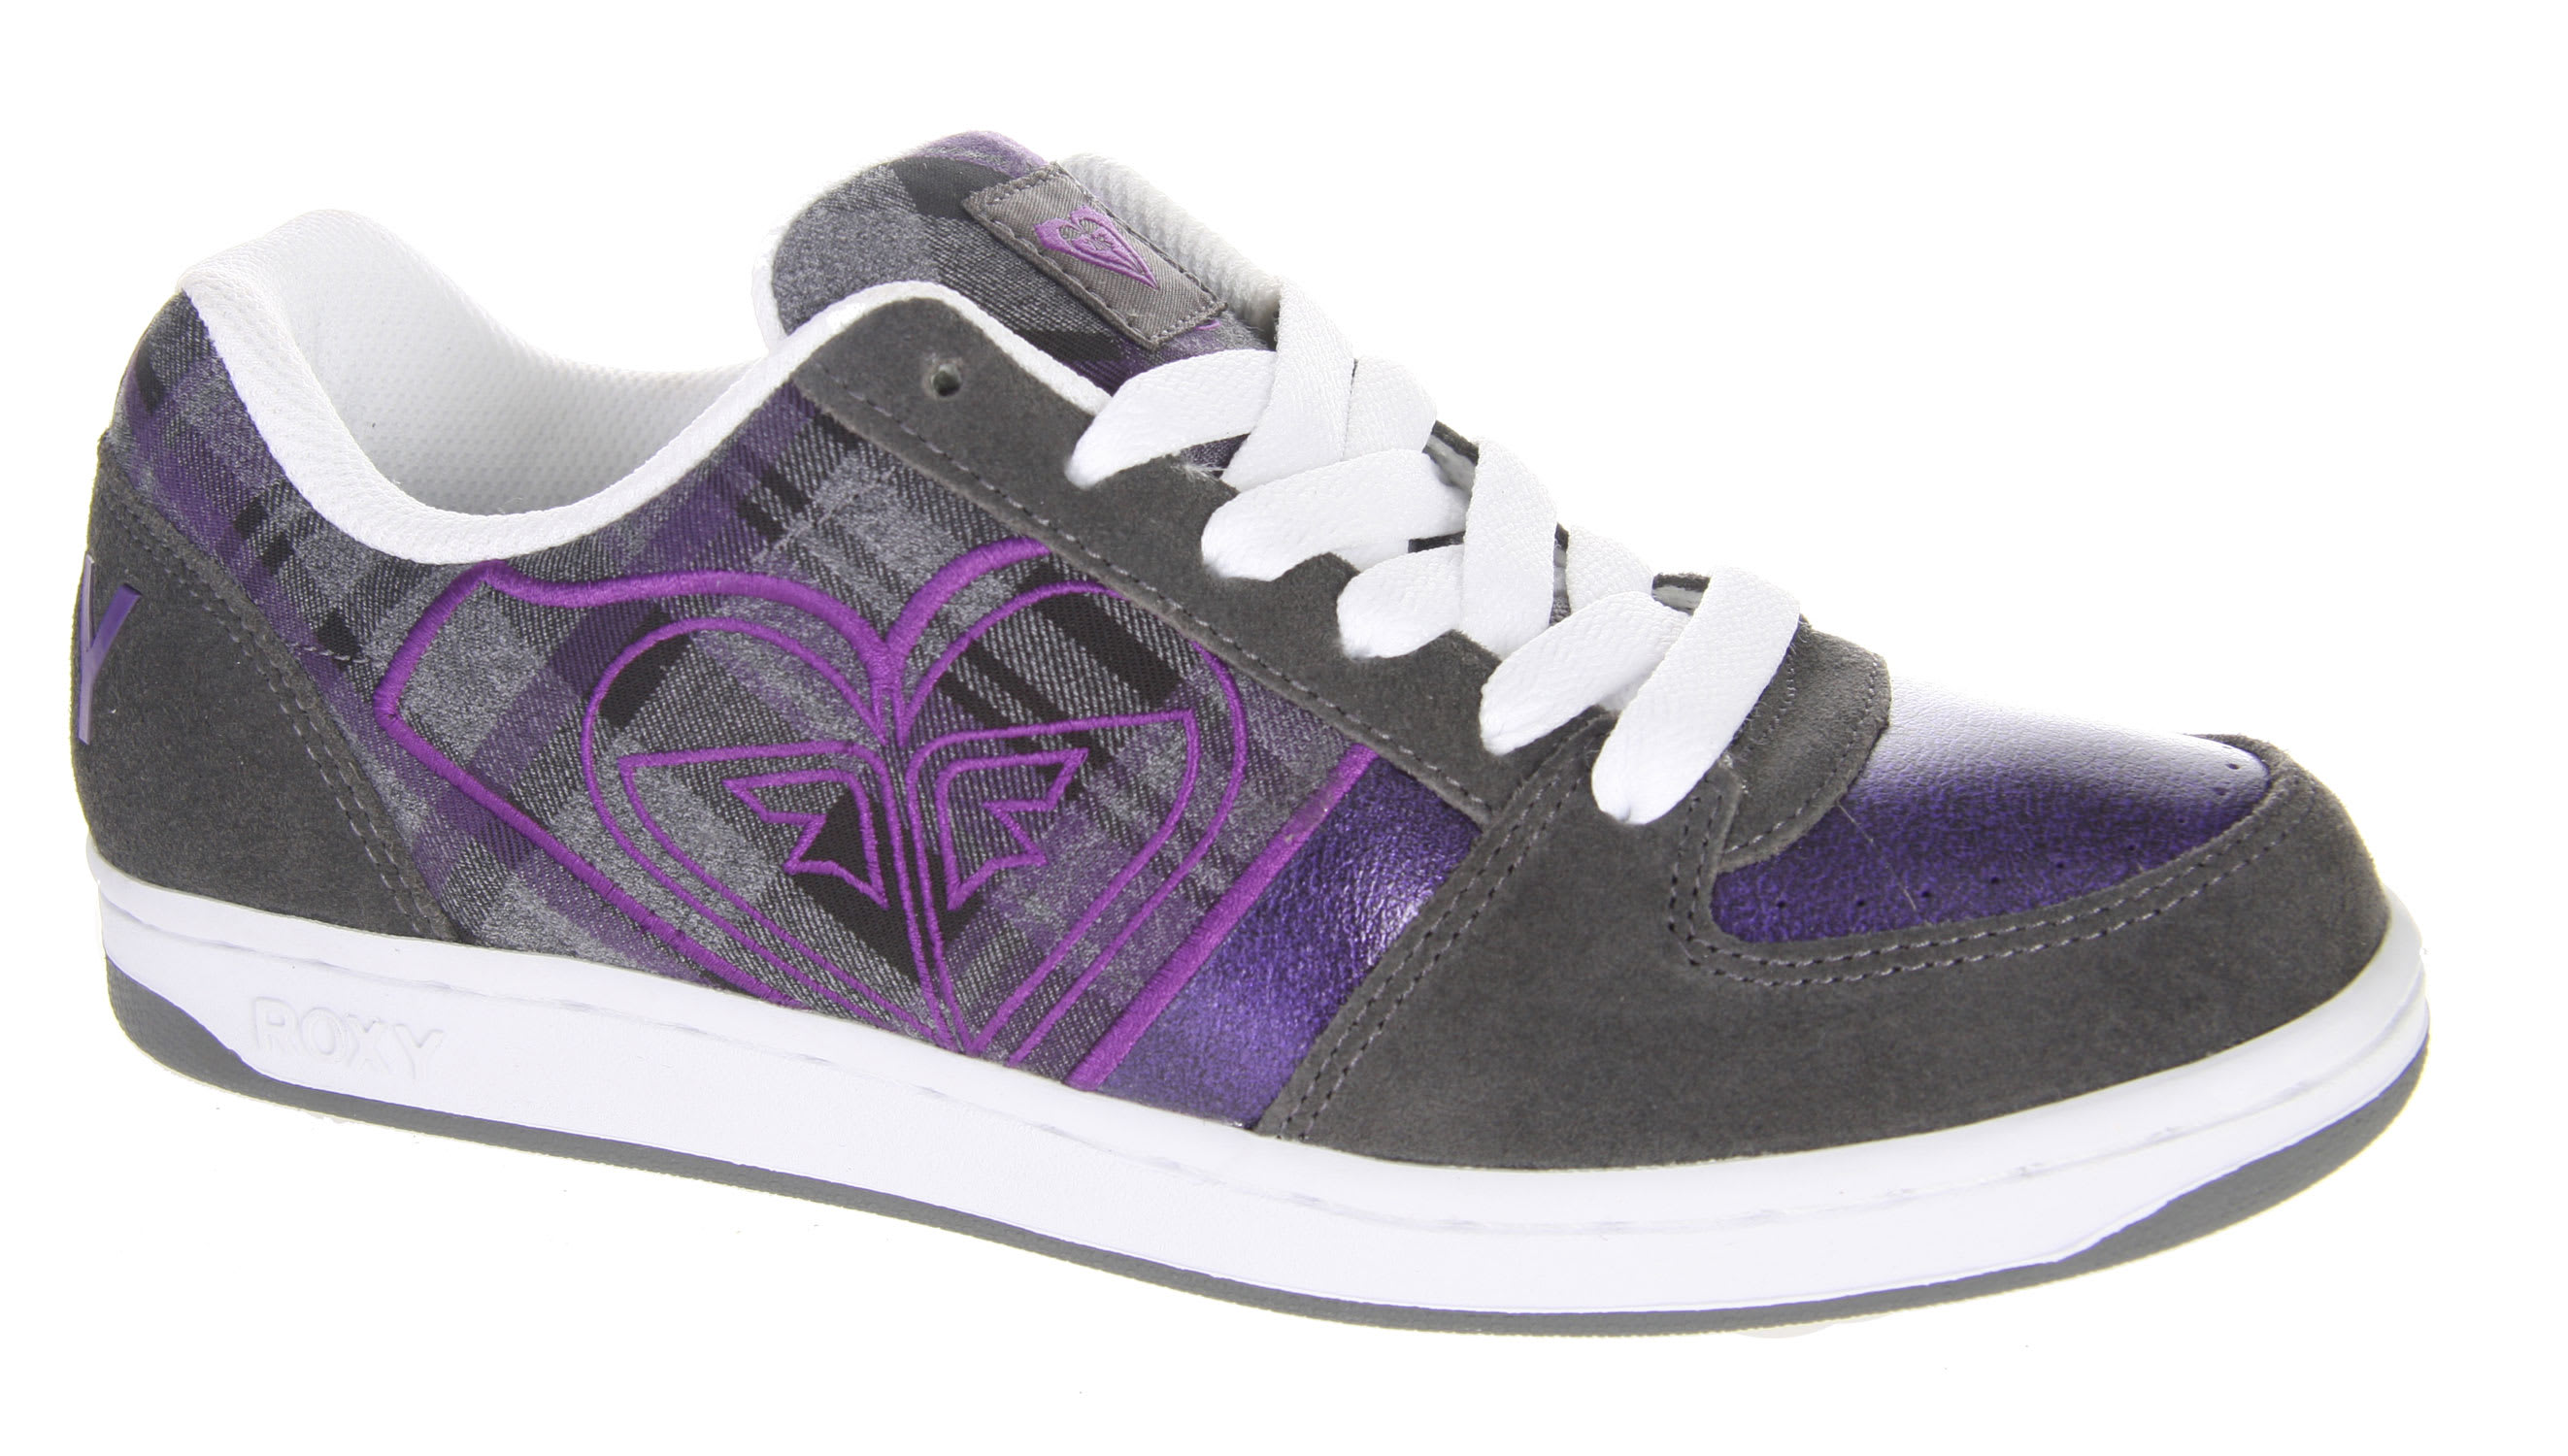 Shop for Girls skate shoes online Compare Prices, Read Reviews